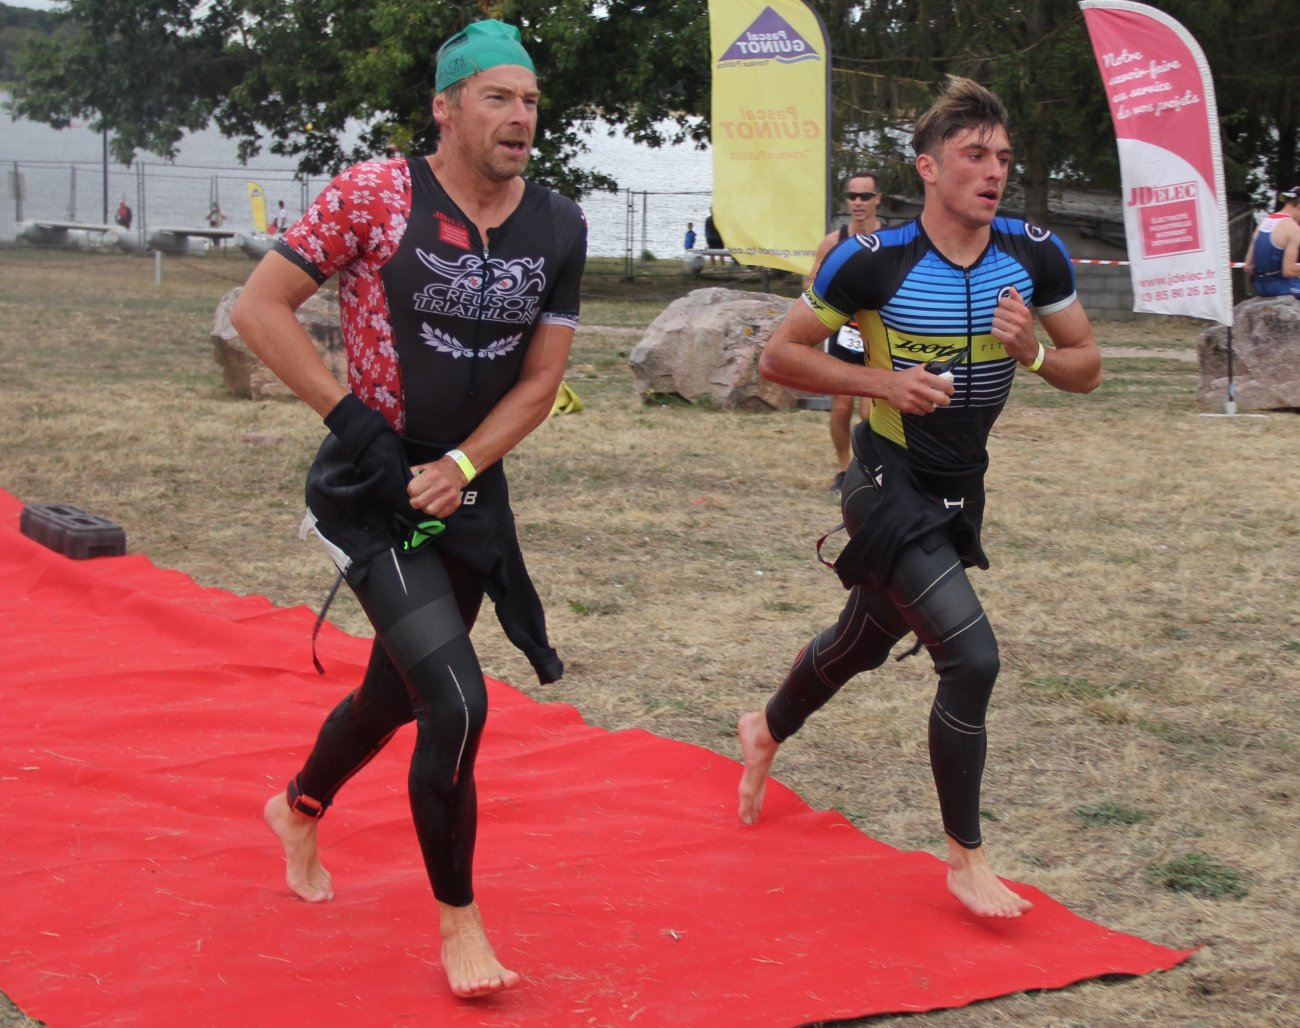 triathlon-du-pilon-414710